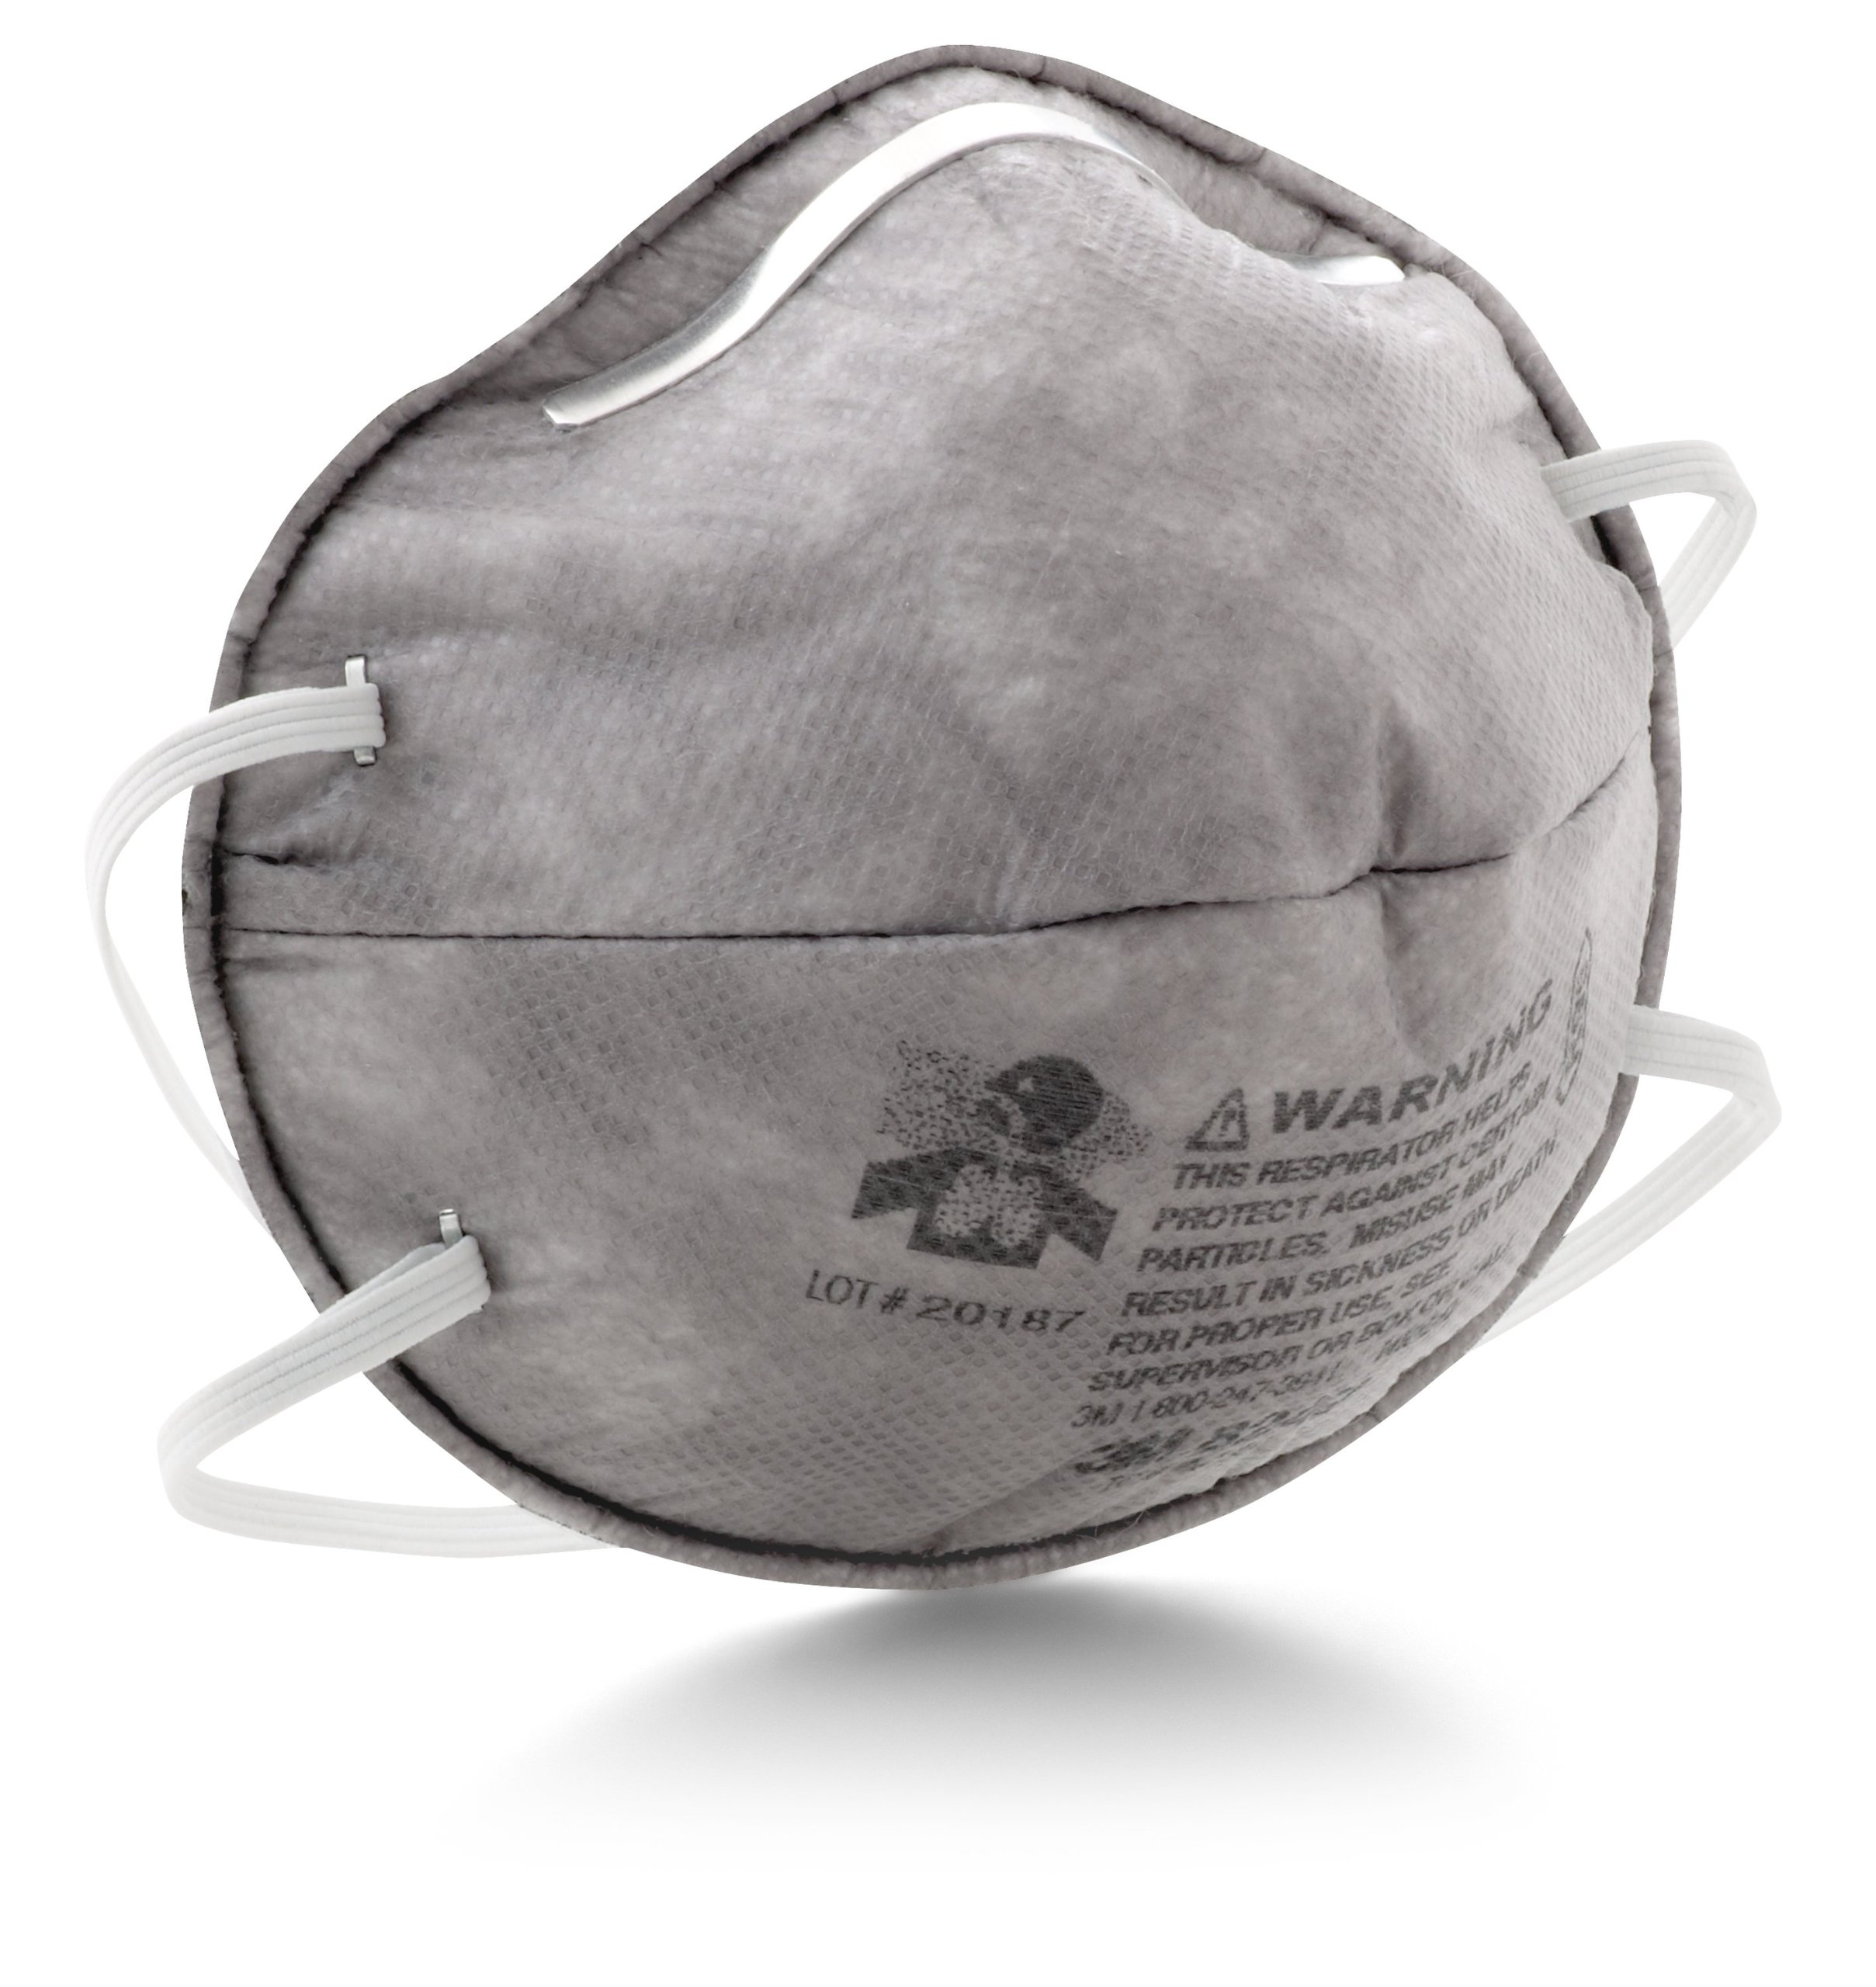 3M 8247 R95 산업용 2급 방진 마스크 20개 세트 구성 3M Particulate Respirator 8247, R95, with Nuisance Level Organic Vapor Relief, 20/Box